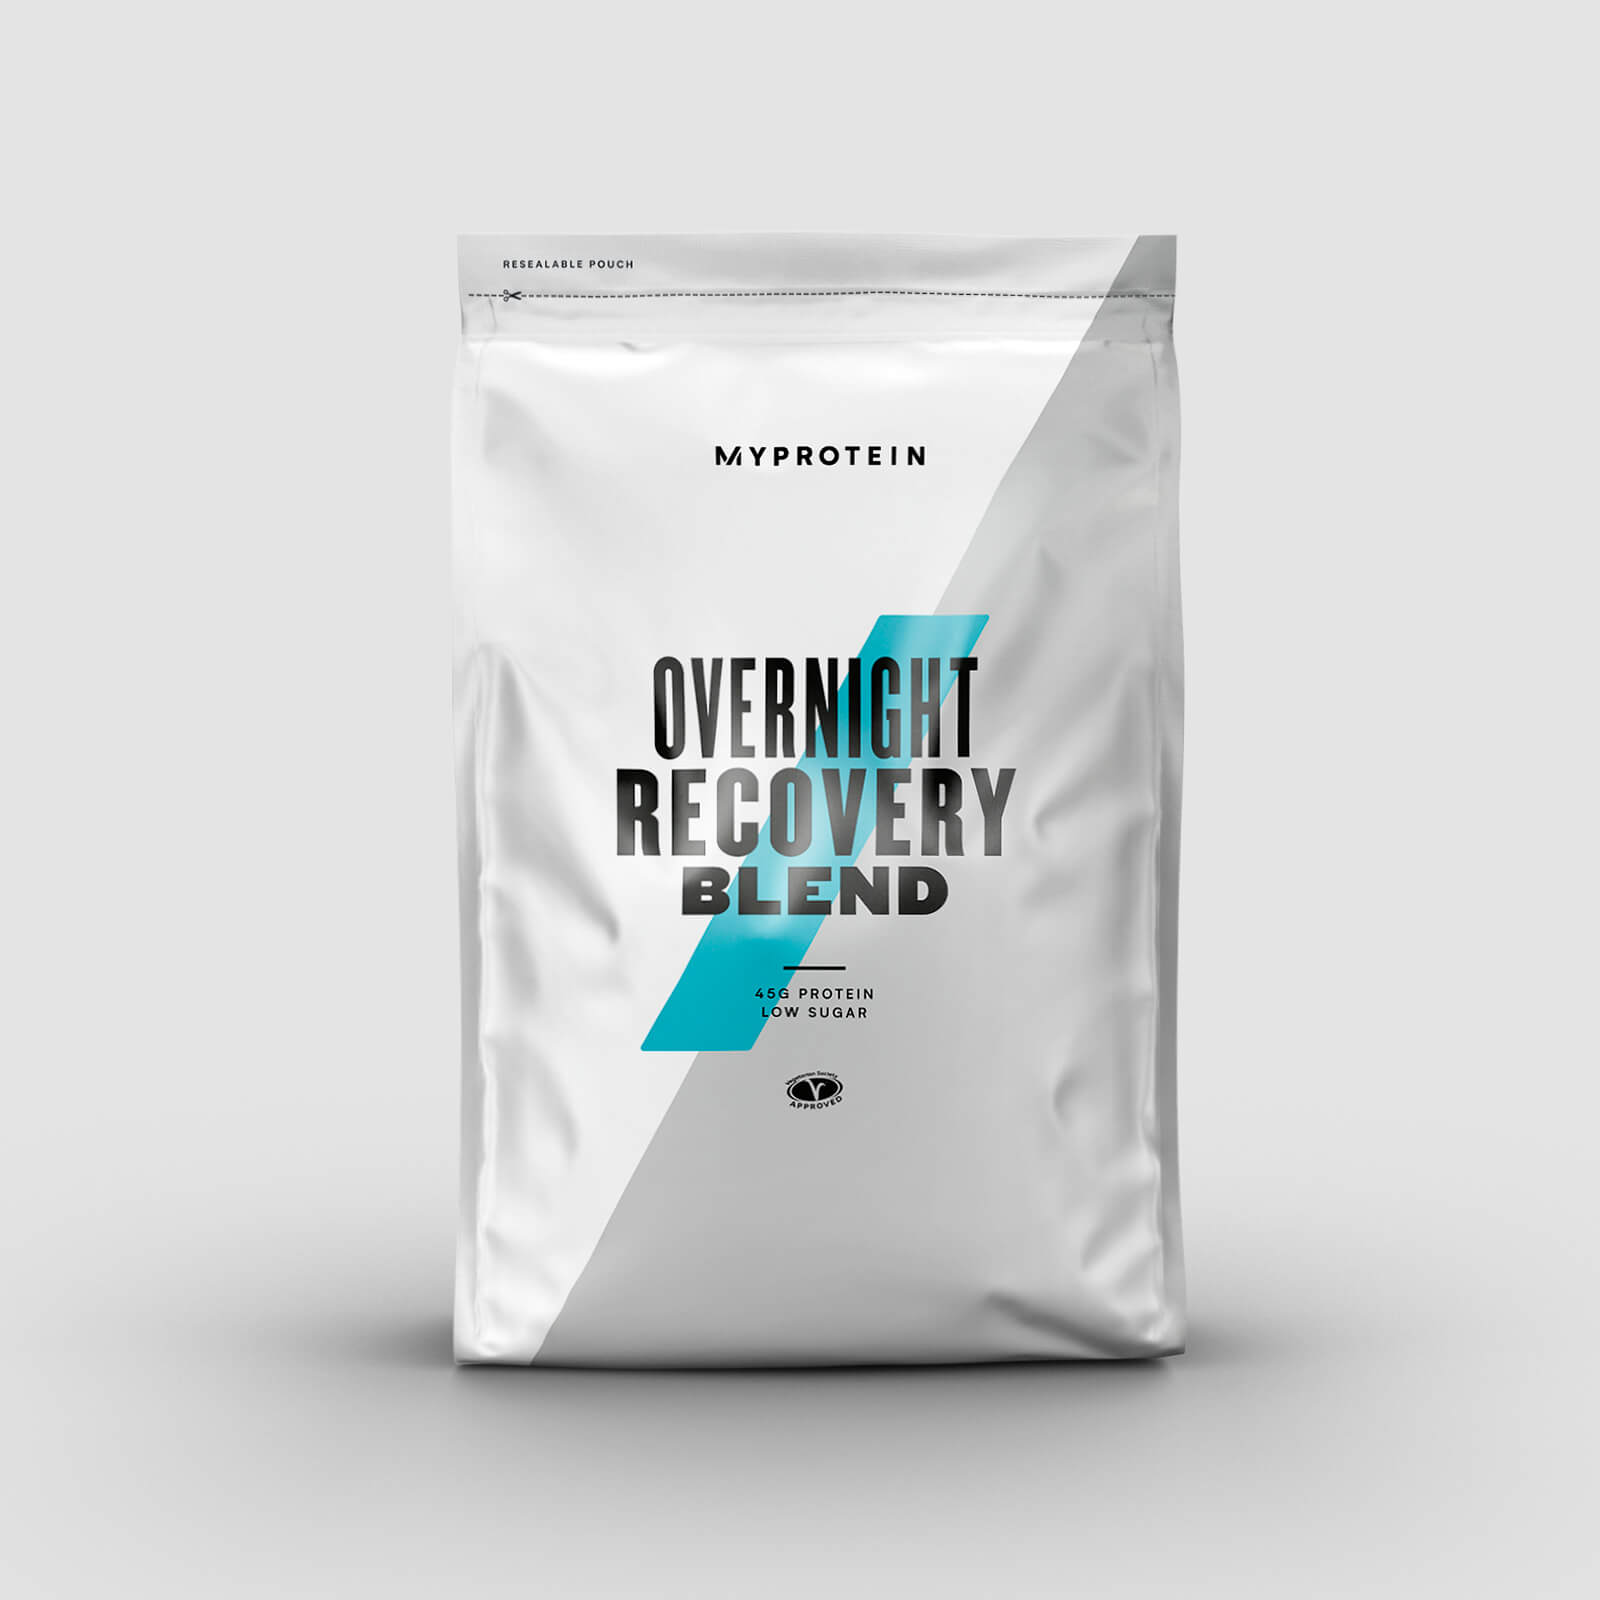 Overnight Recovey Blend